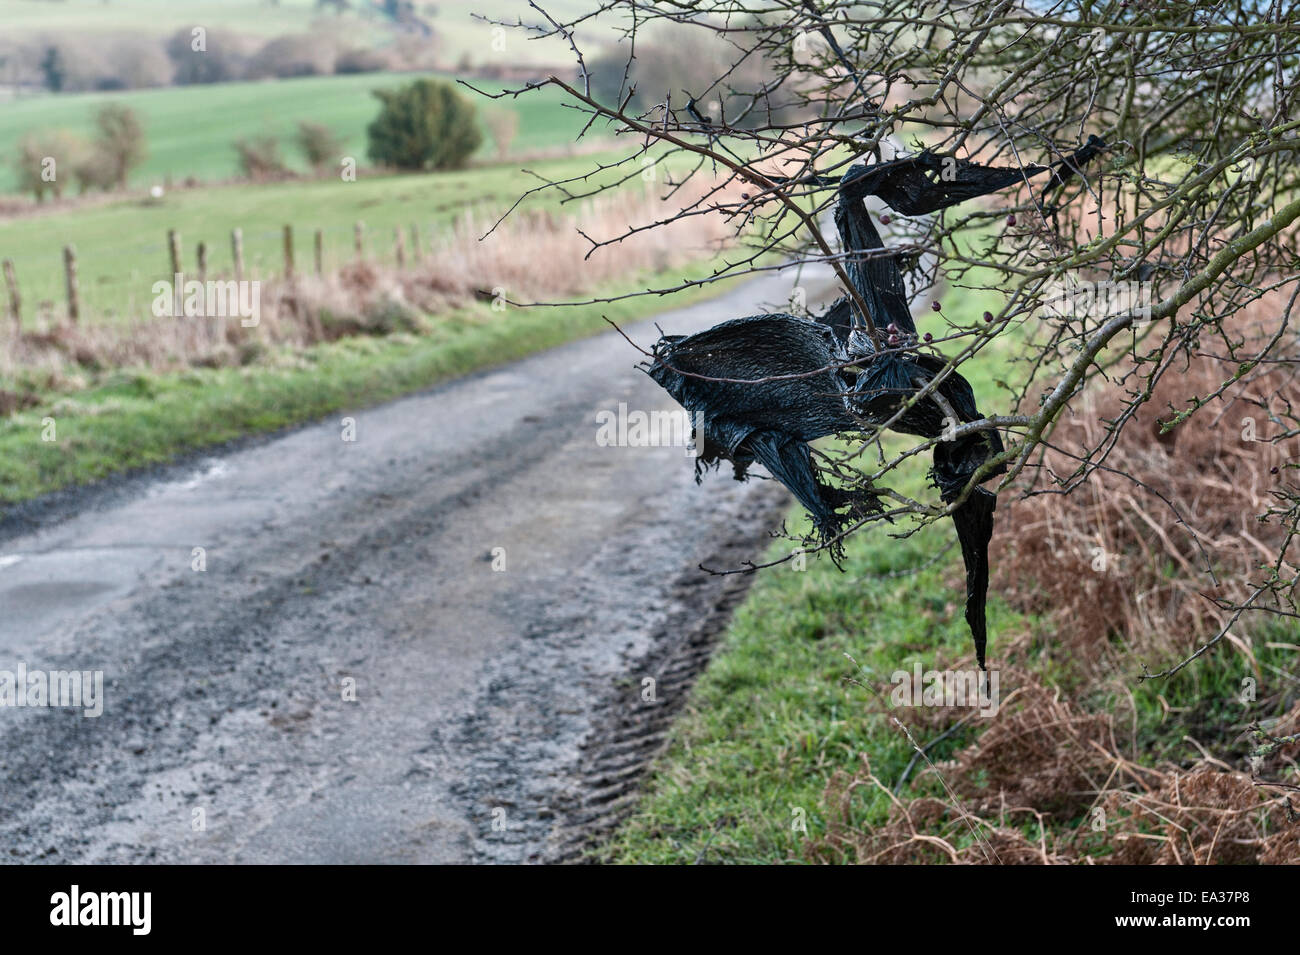 Dancer - black plastic sheeting caught in a hedge, Wales, UK. - Stock Image